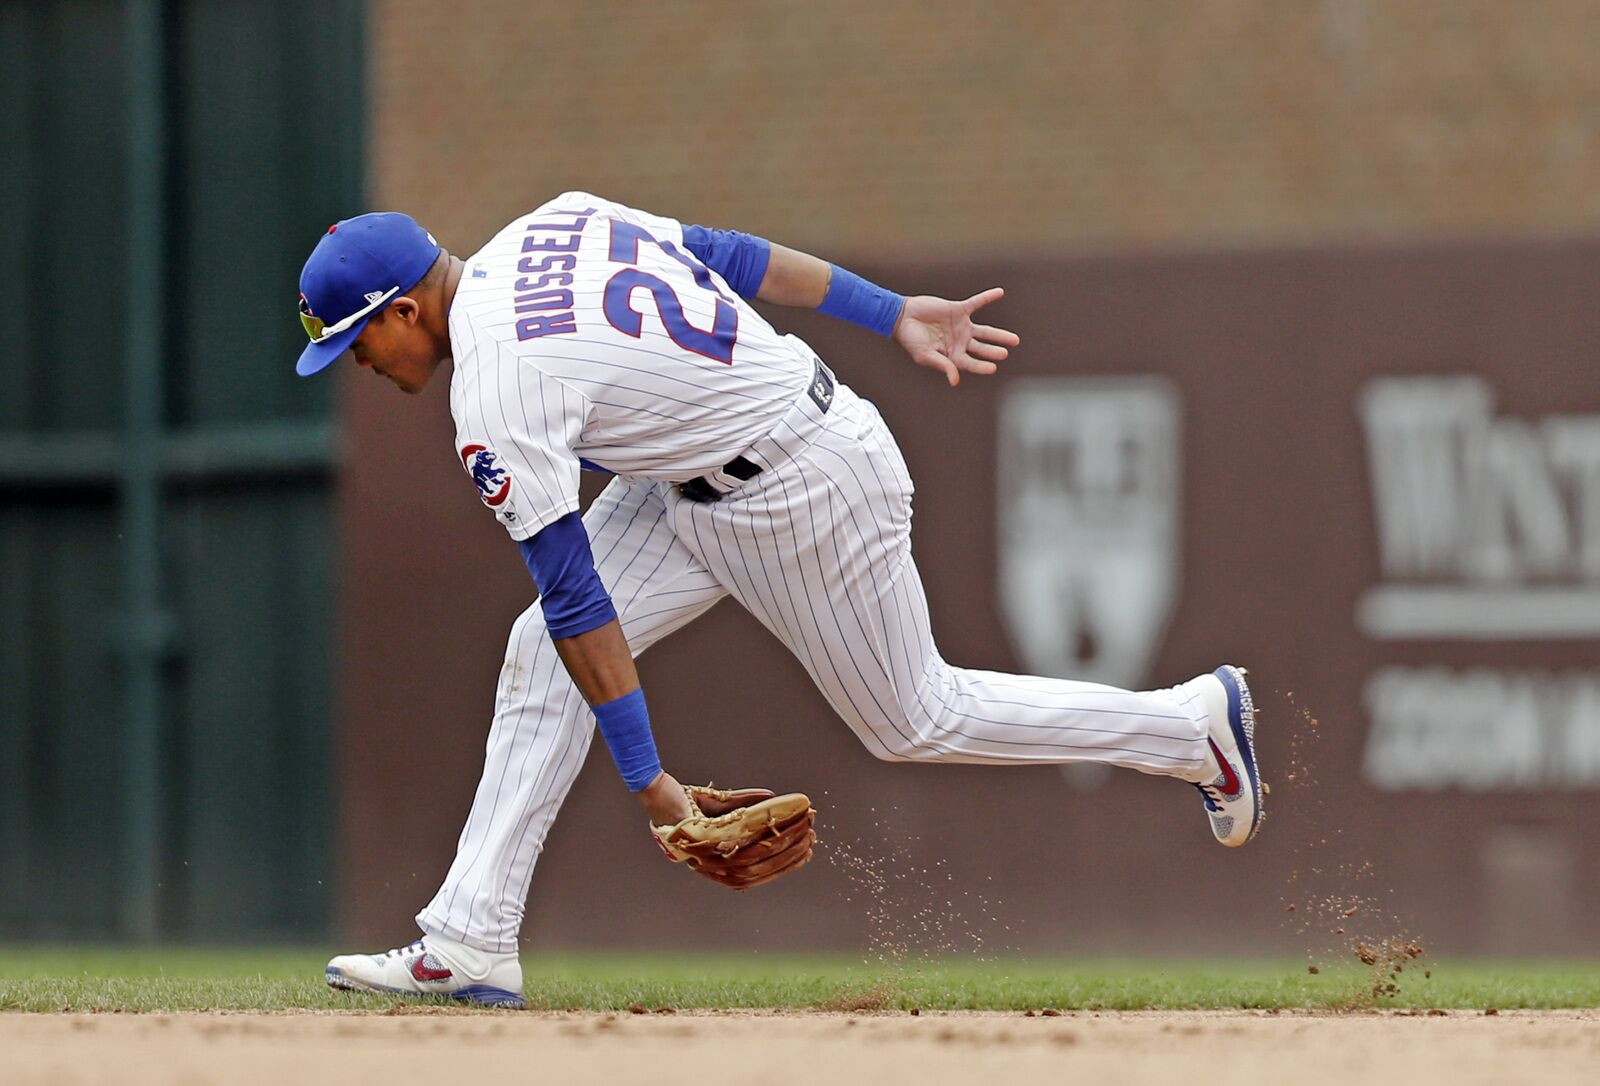 Chicago Cubs: What to do with Addison Russell?